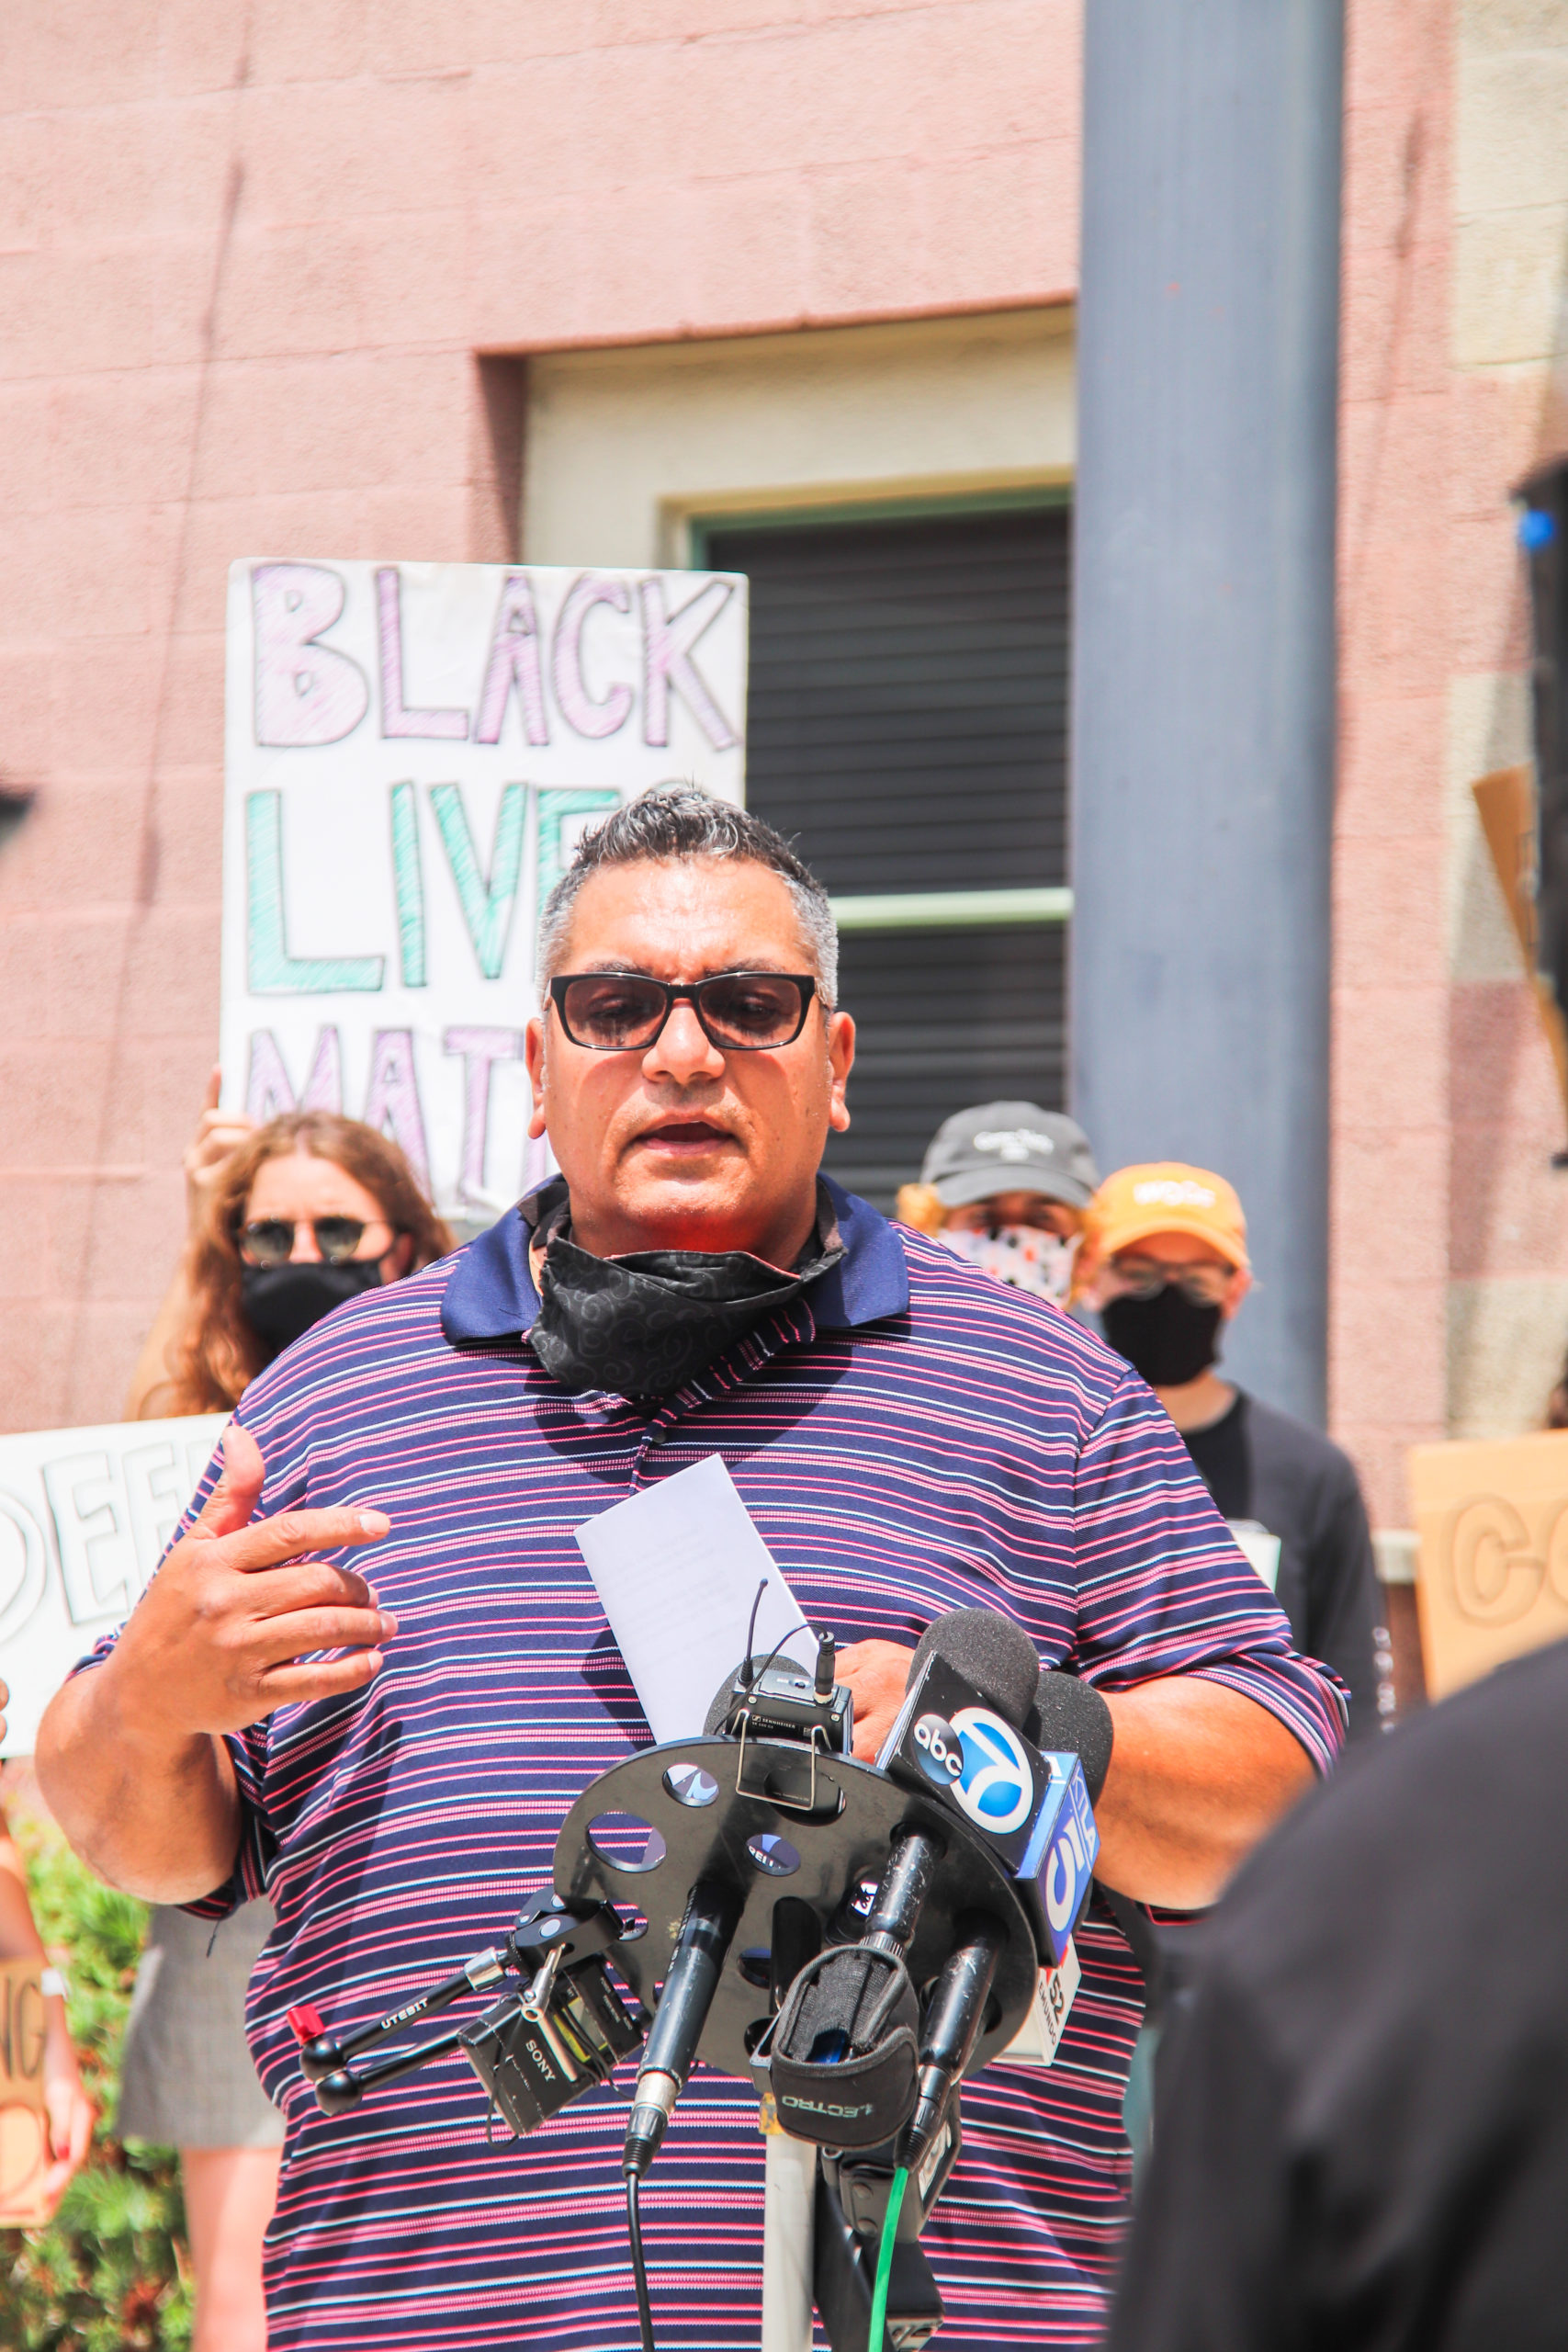 south-pasadena-news-06-24-2020-vanessa-marquez-police-shooting-wrongful-death-lawsuit-city-hall-28